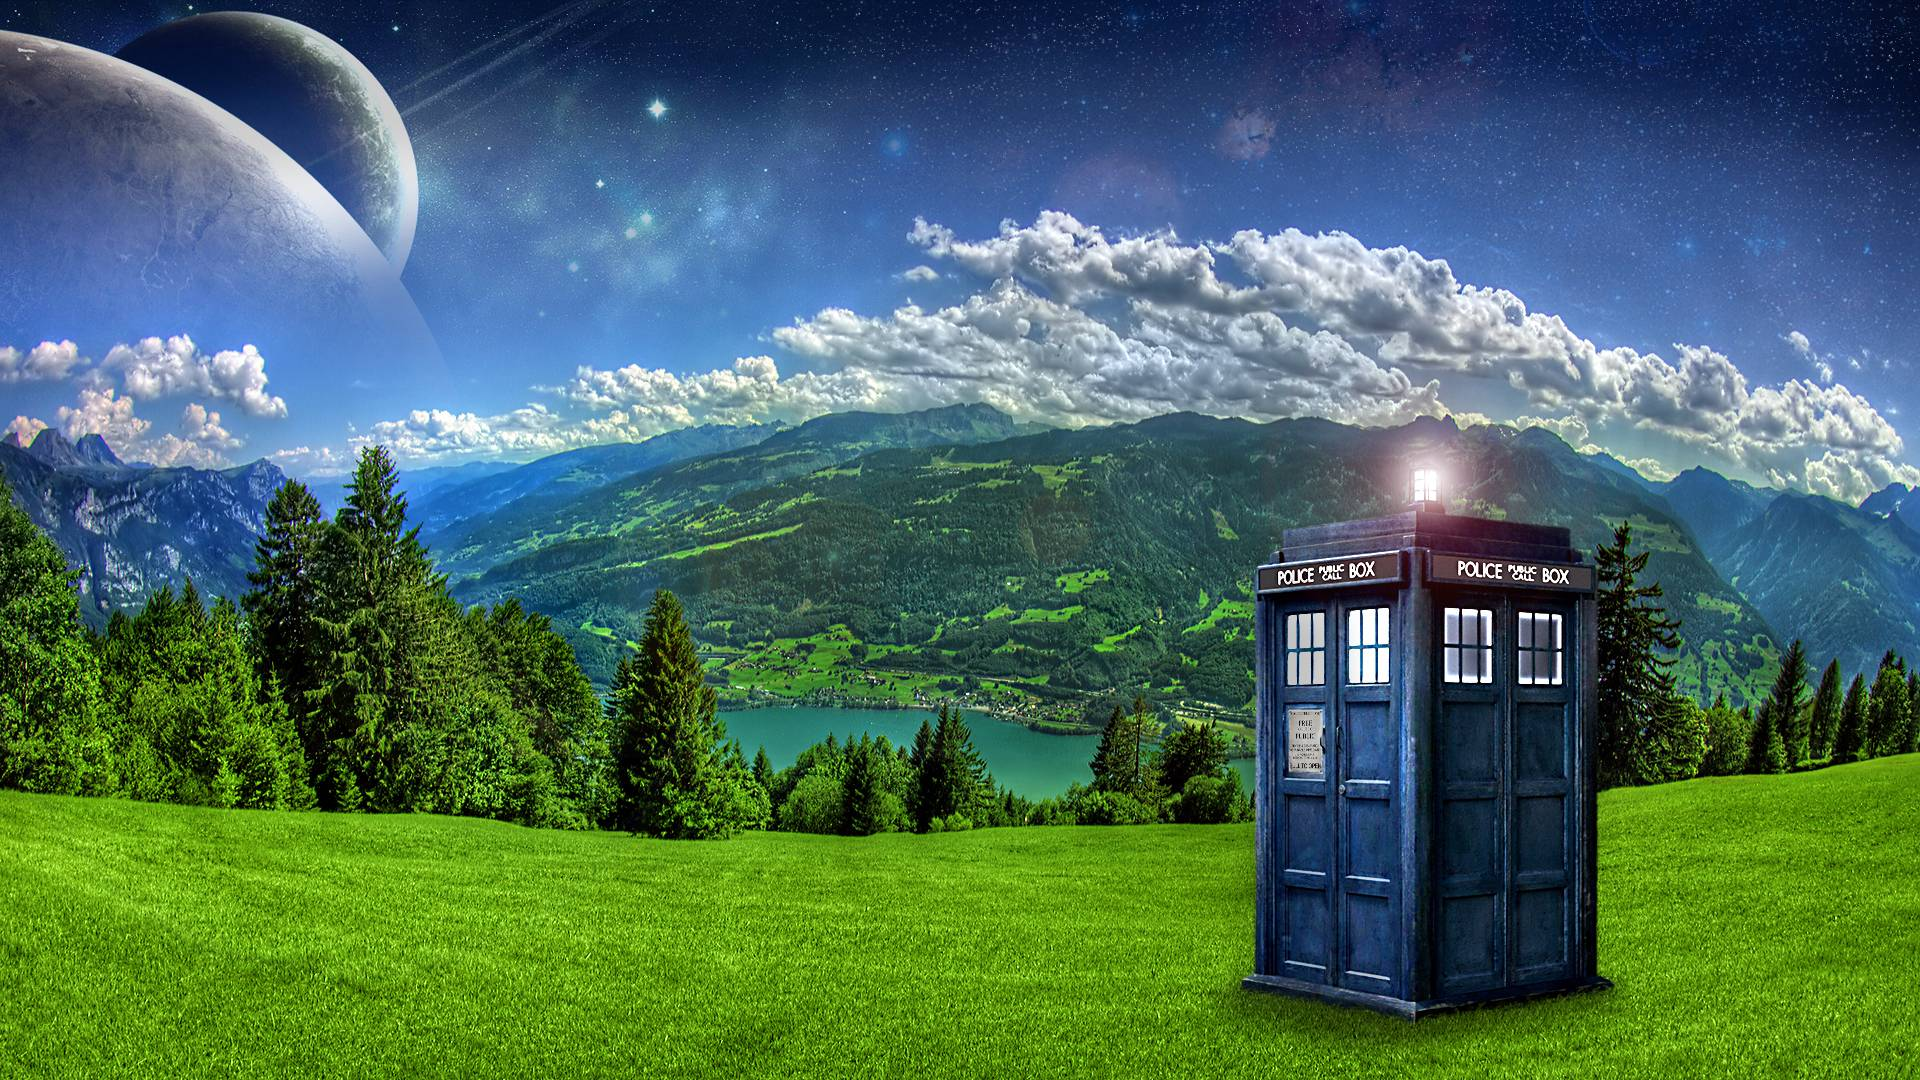 dr who wallpaper 8 - photo #25